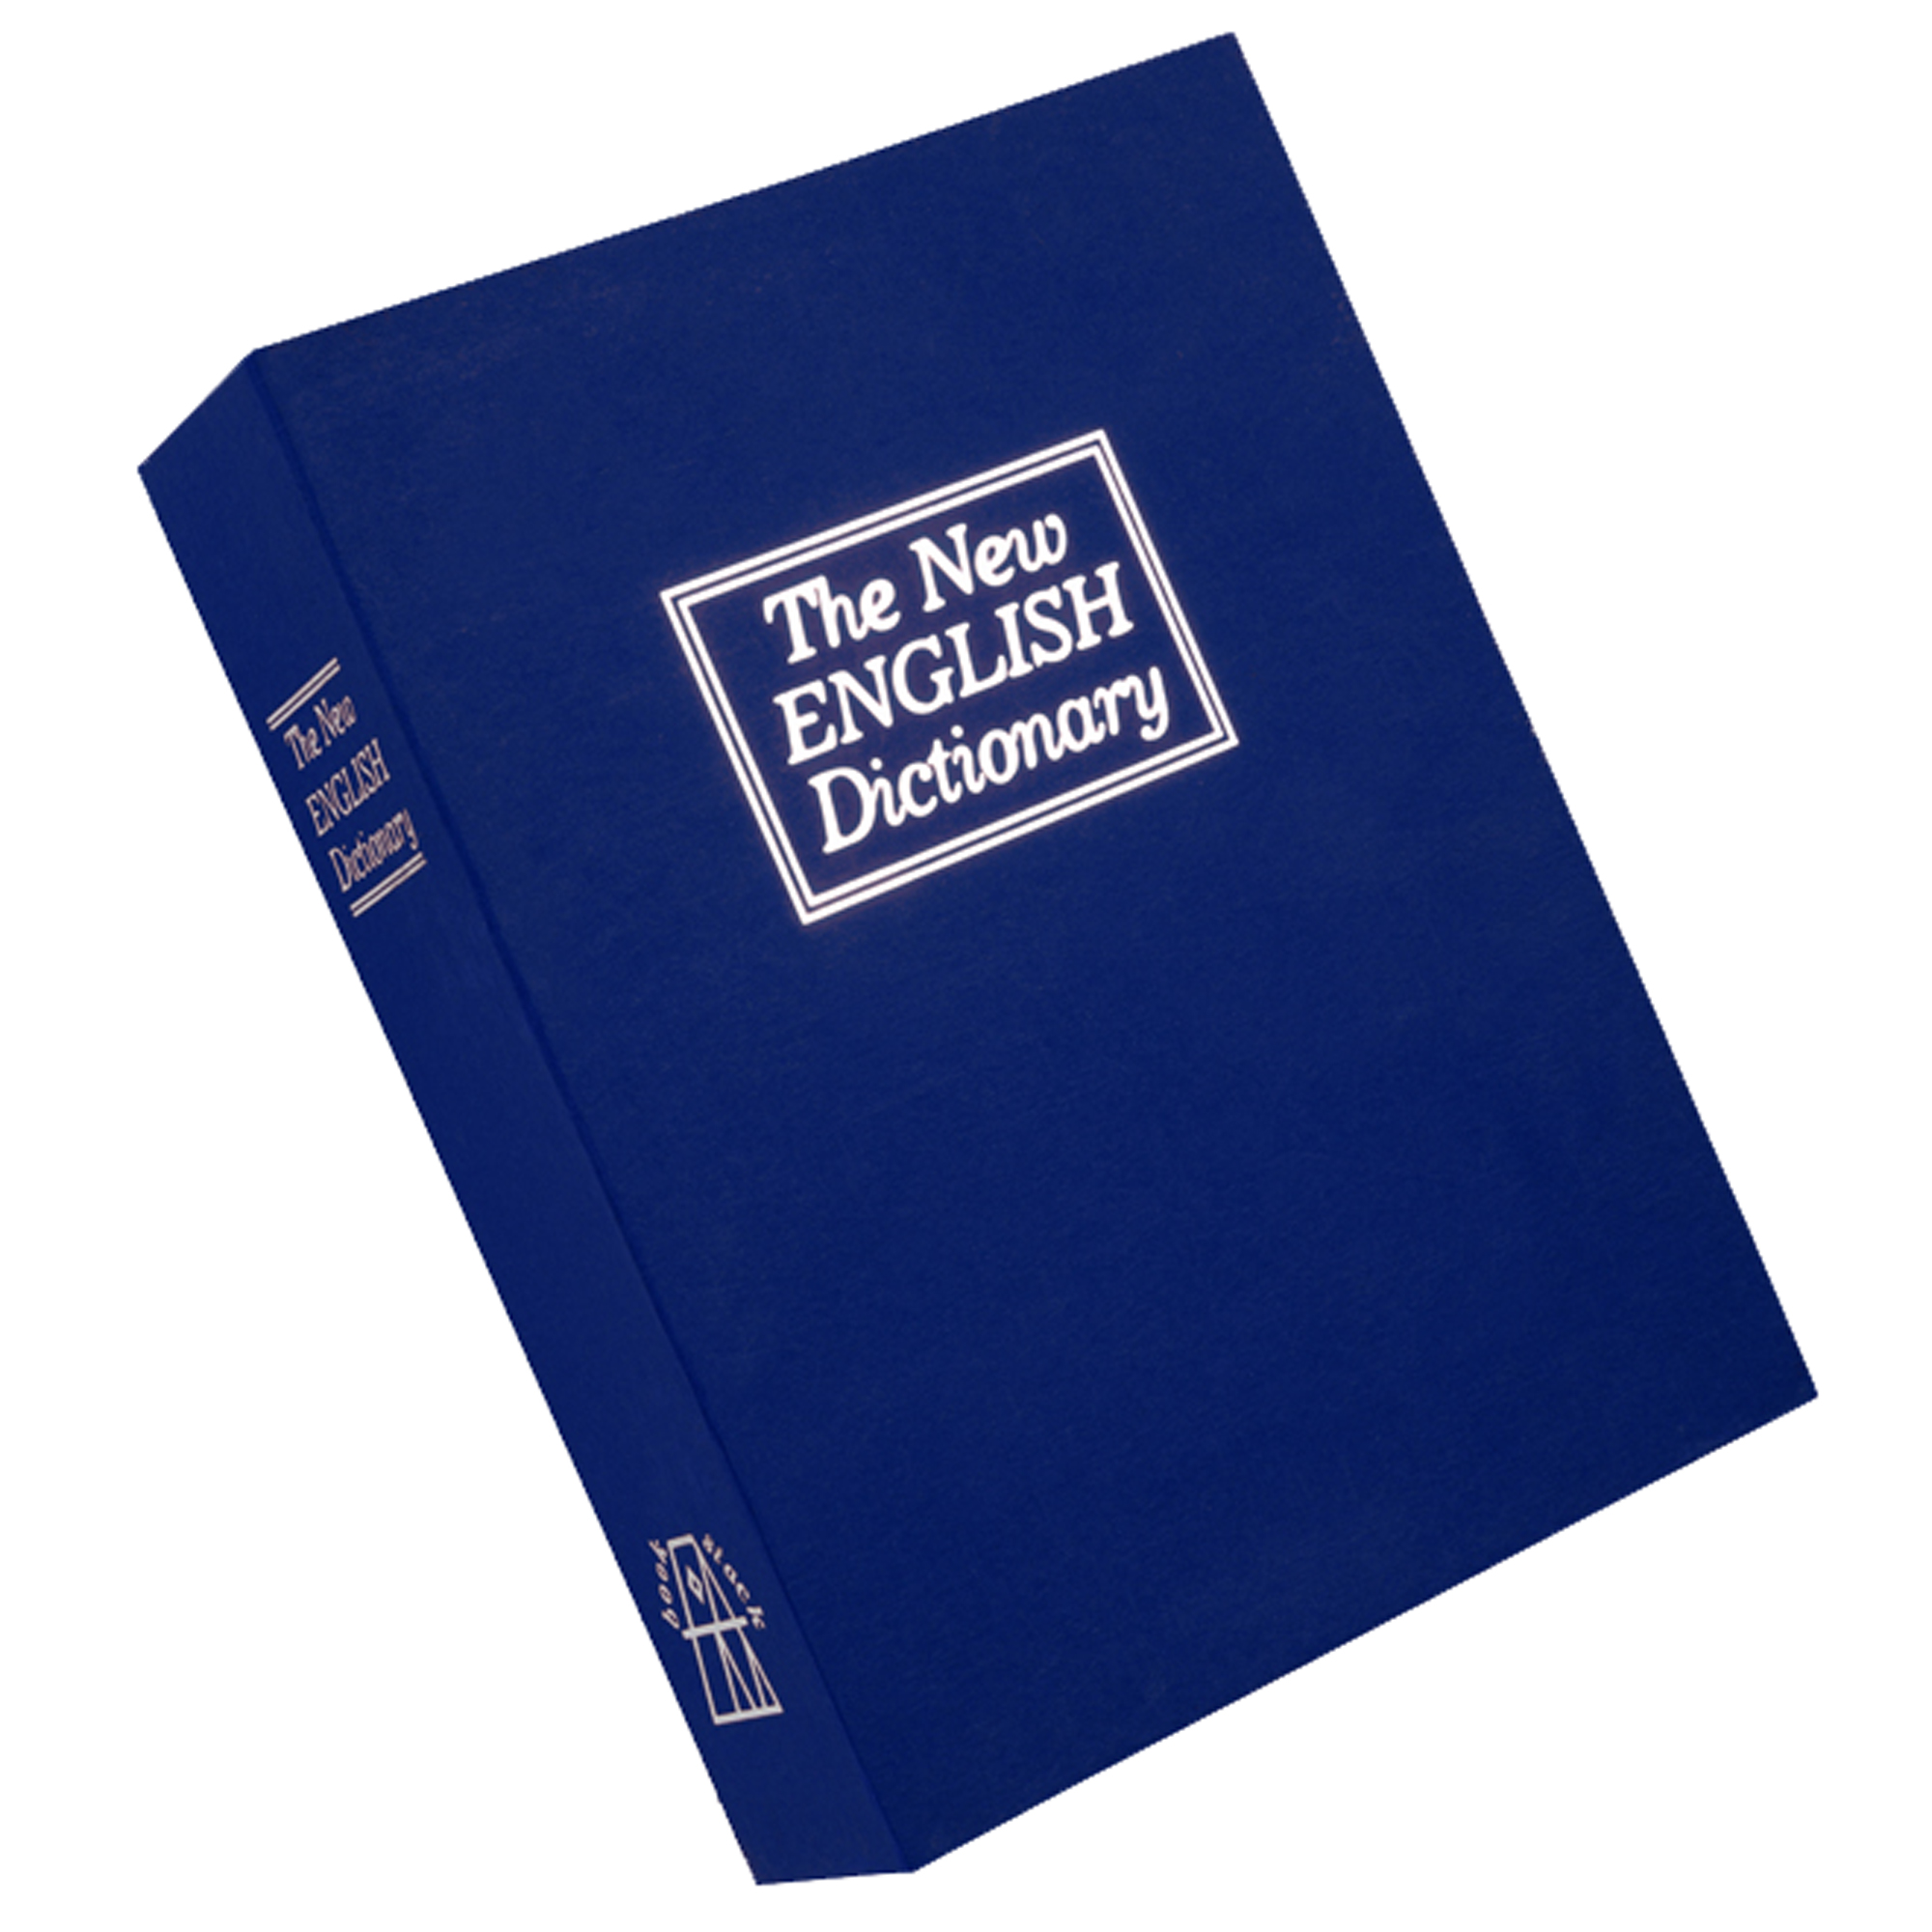 "Bulldog Deluxe BLUE Diversion Book Vault - Internal Dimensions: 9.30"" Length x 6.70"" Width x 2"" Height - External Dimensions: 10.6"" Length x 7.7"" Width x 2.5"" Height - Steel - Blue - Retail"